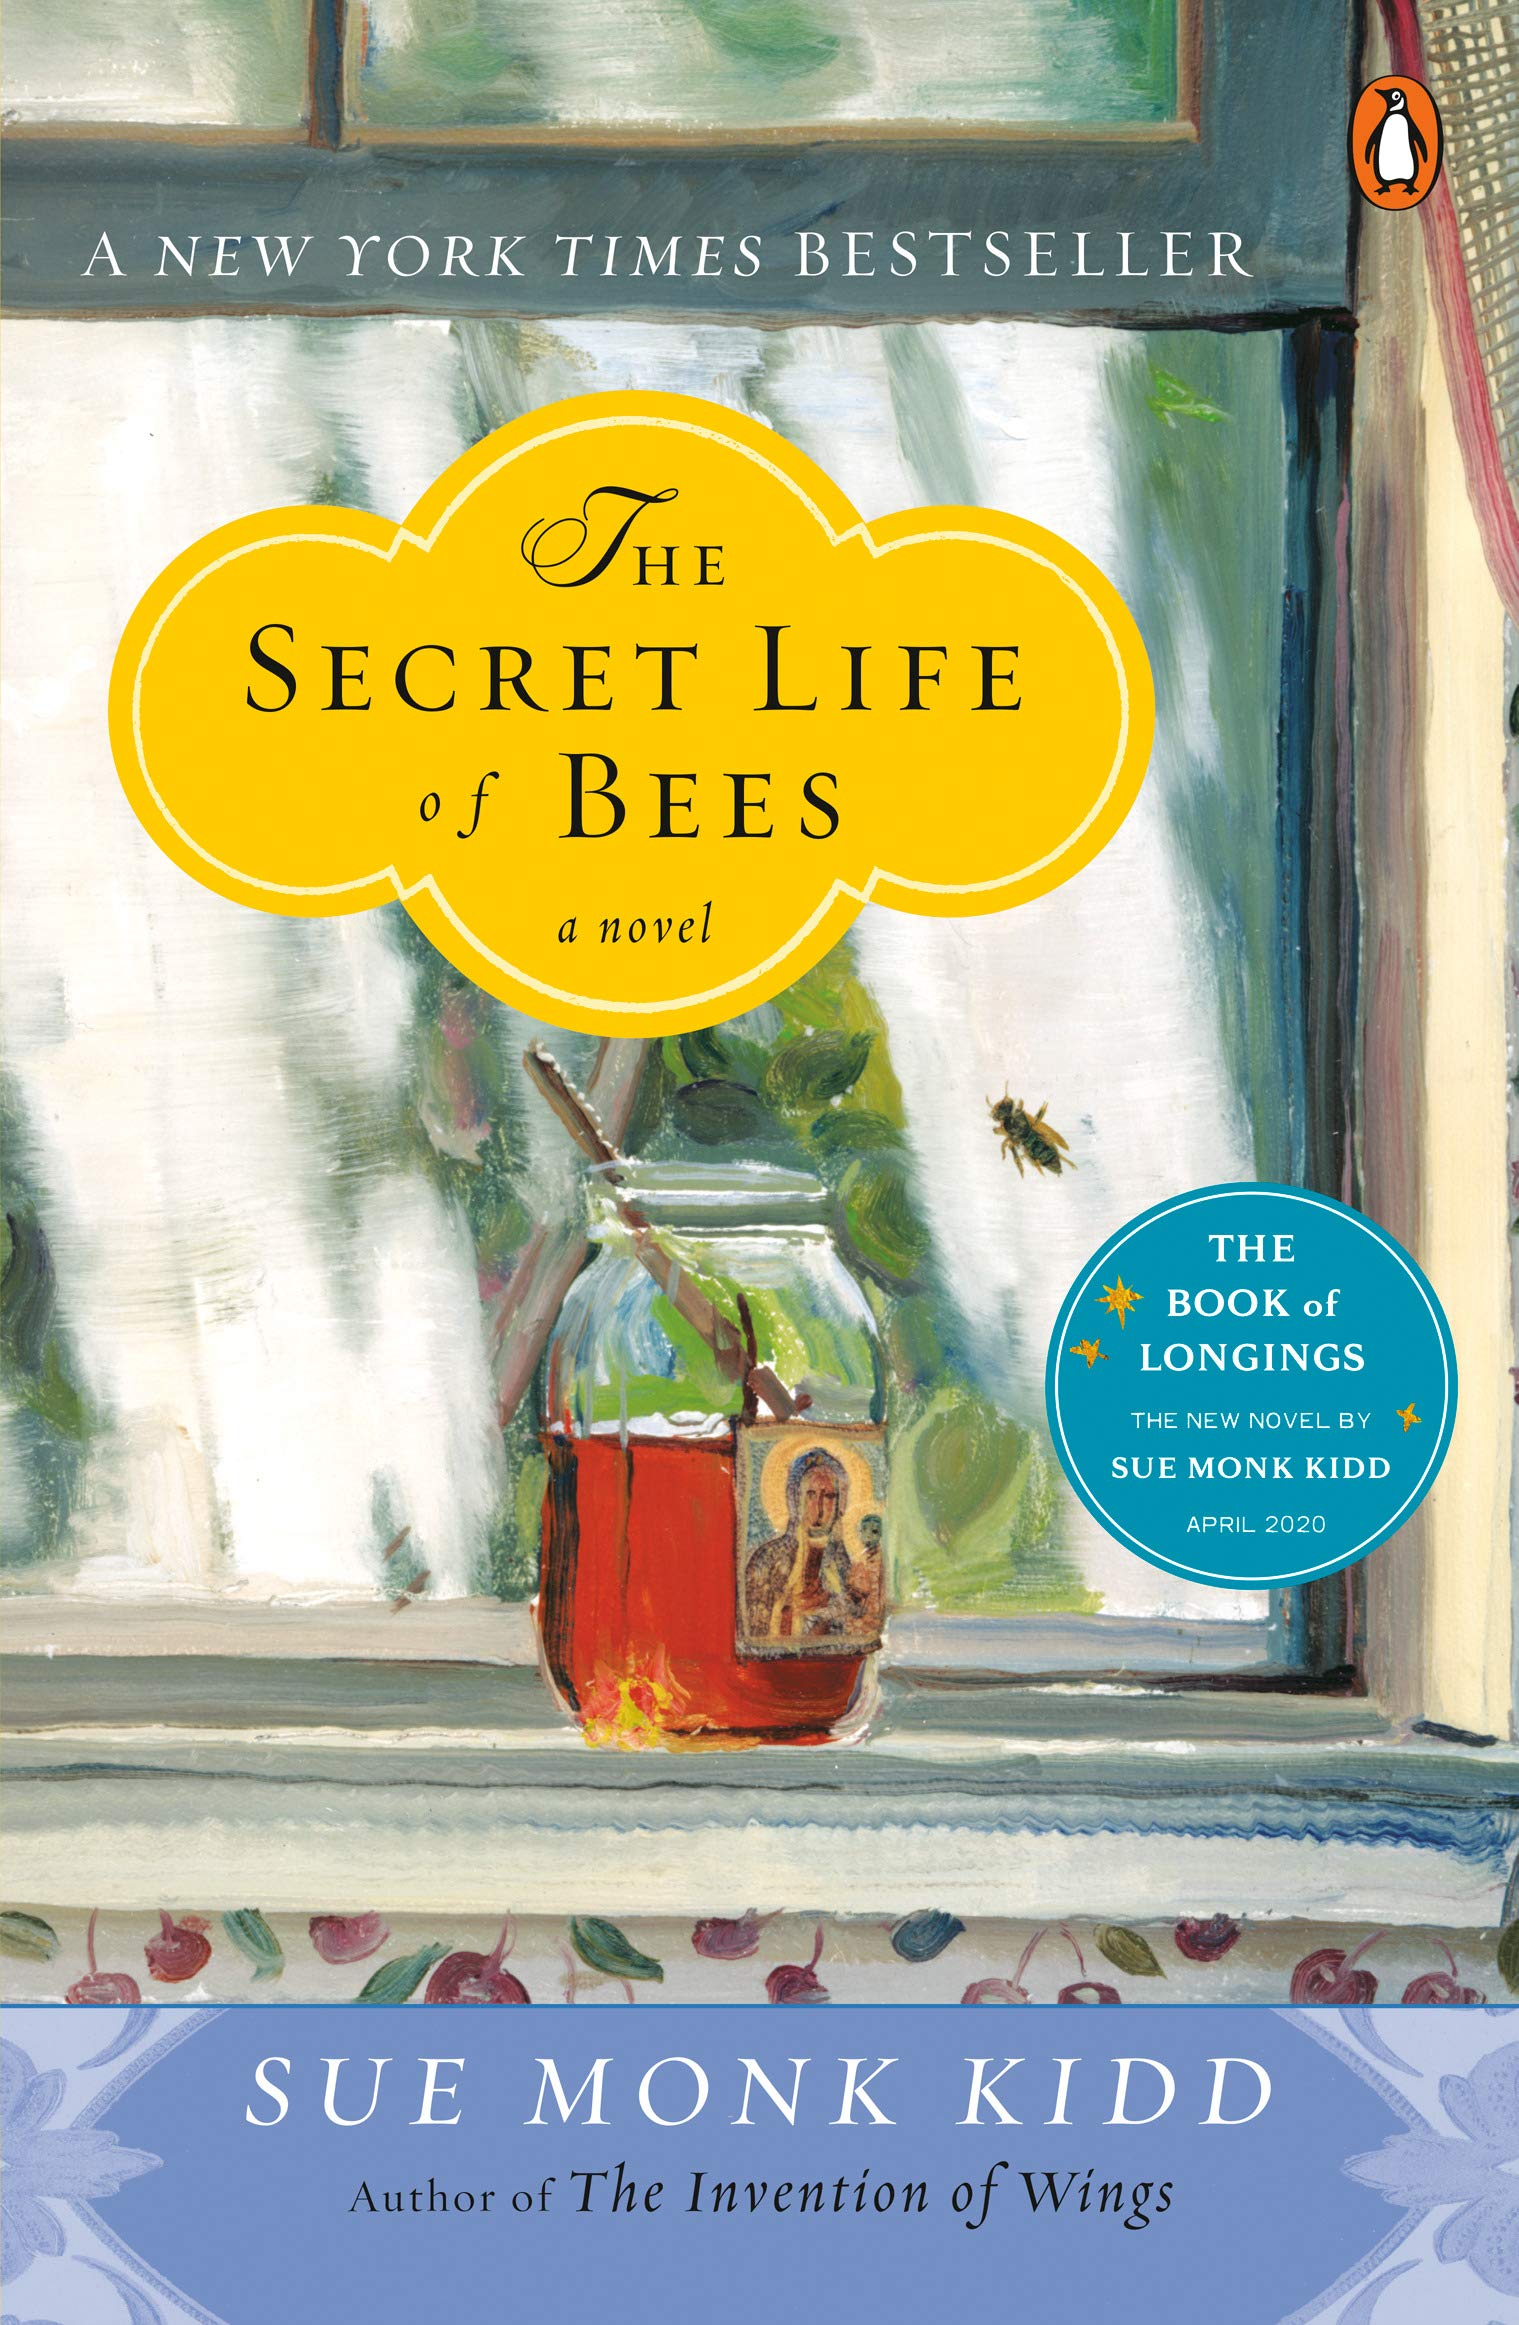 Book Review - The Secret Life of Bees by Sue Monk Kidd